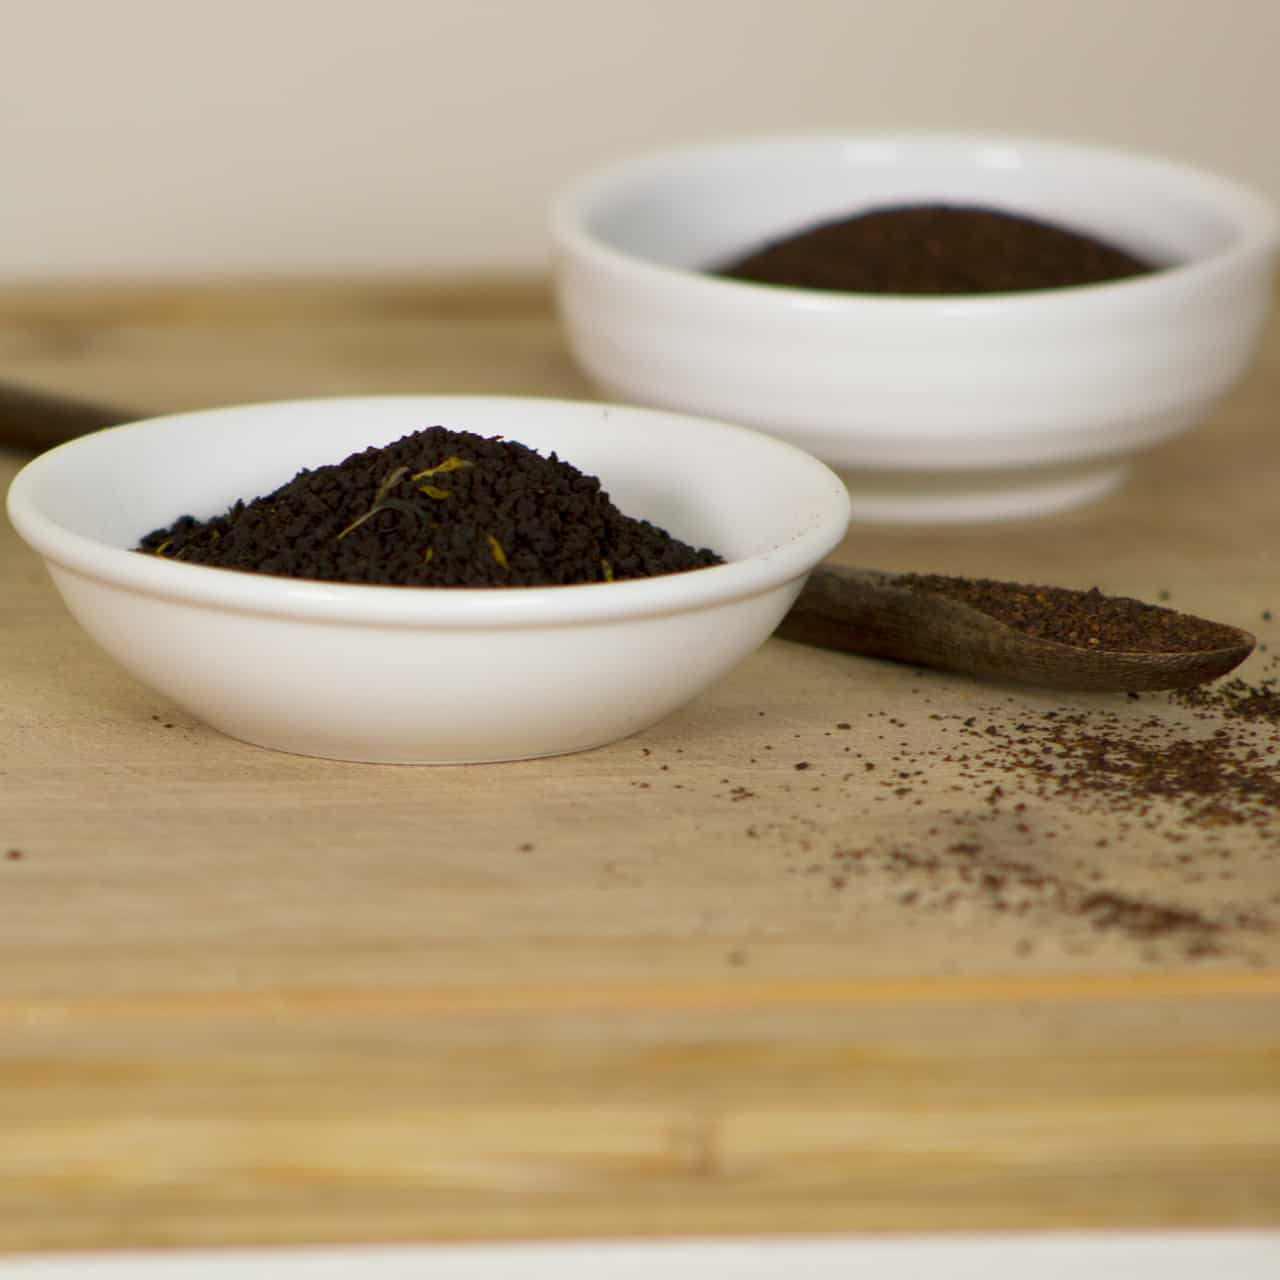 How much loose leaf tea should be used to make a cup of tea?